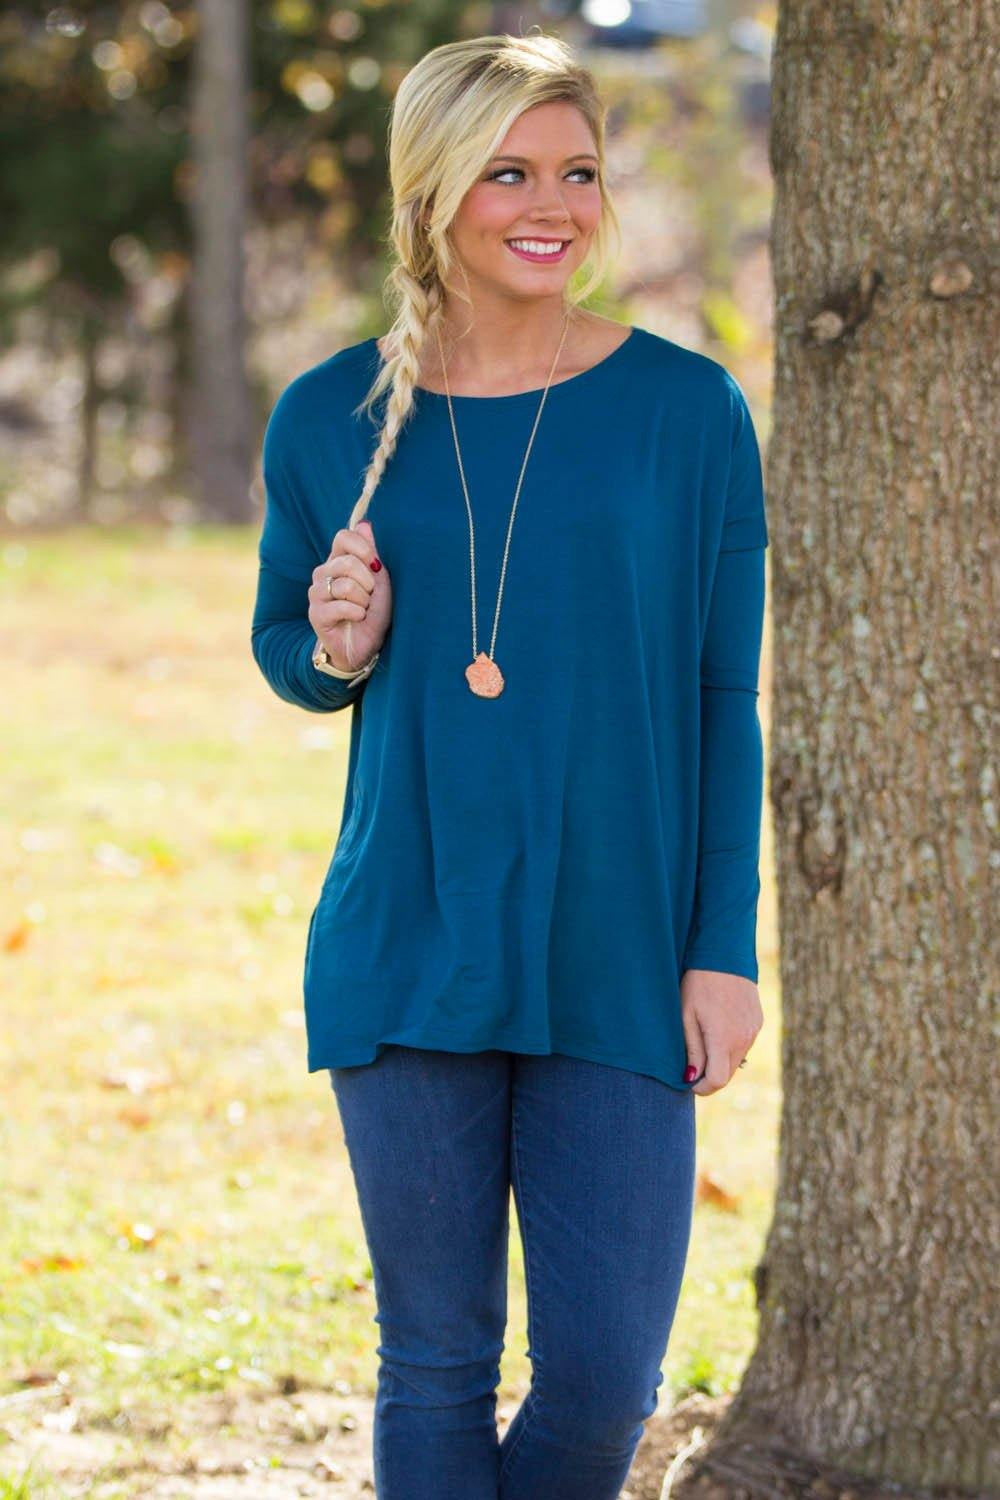 Long Sleeve Piko Top - Majolica Blue - Piko Clothing